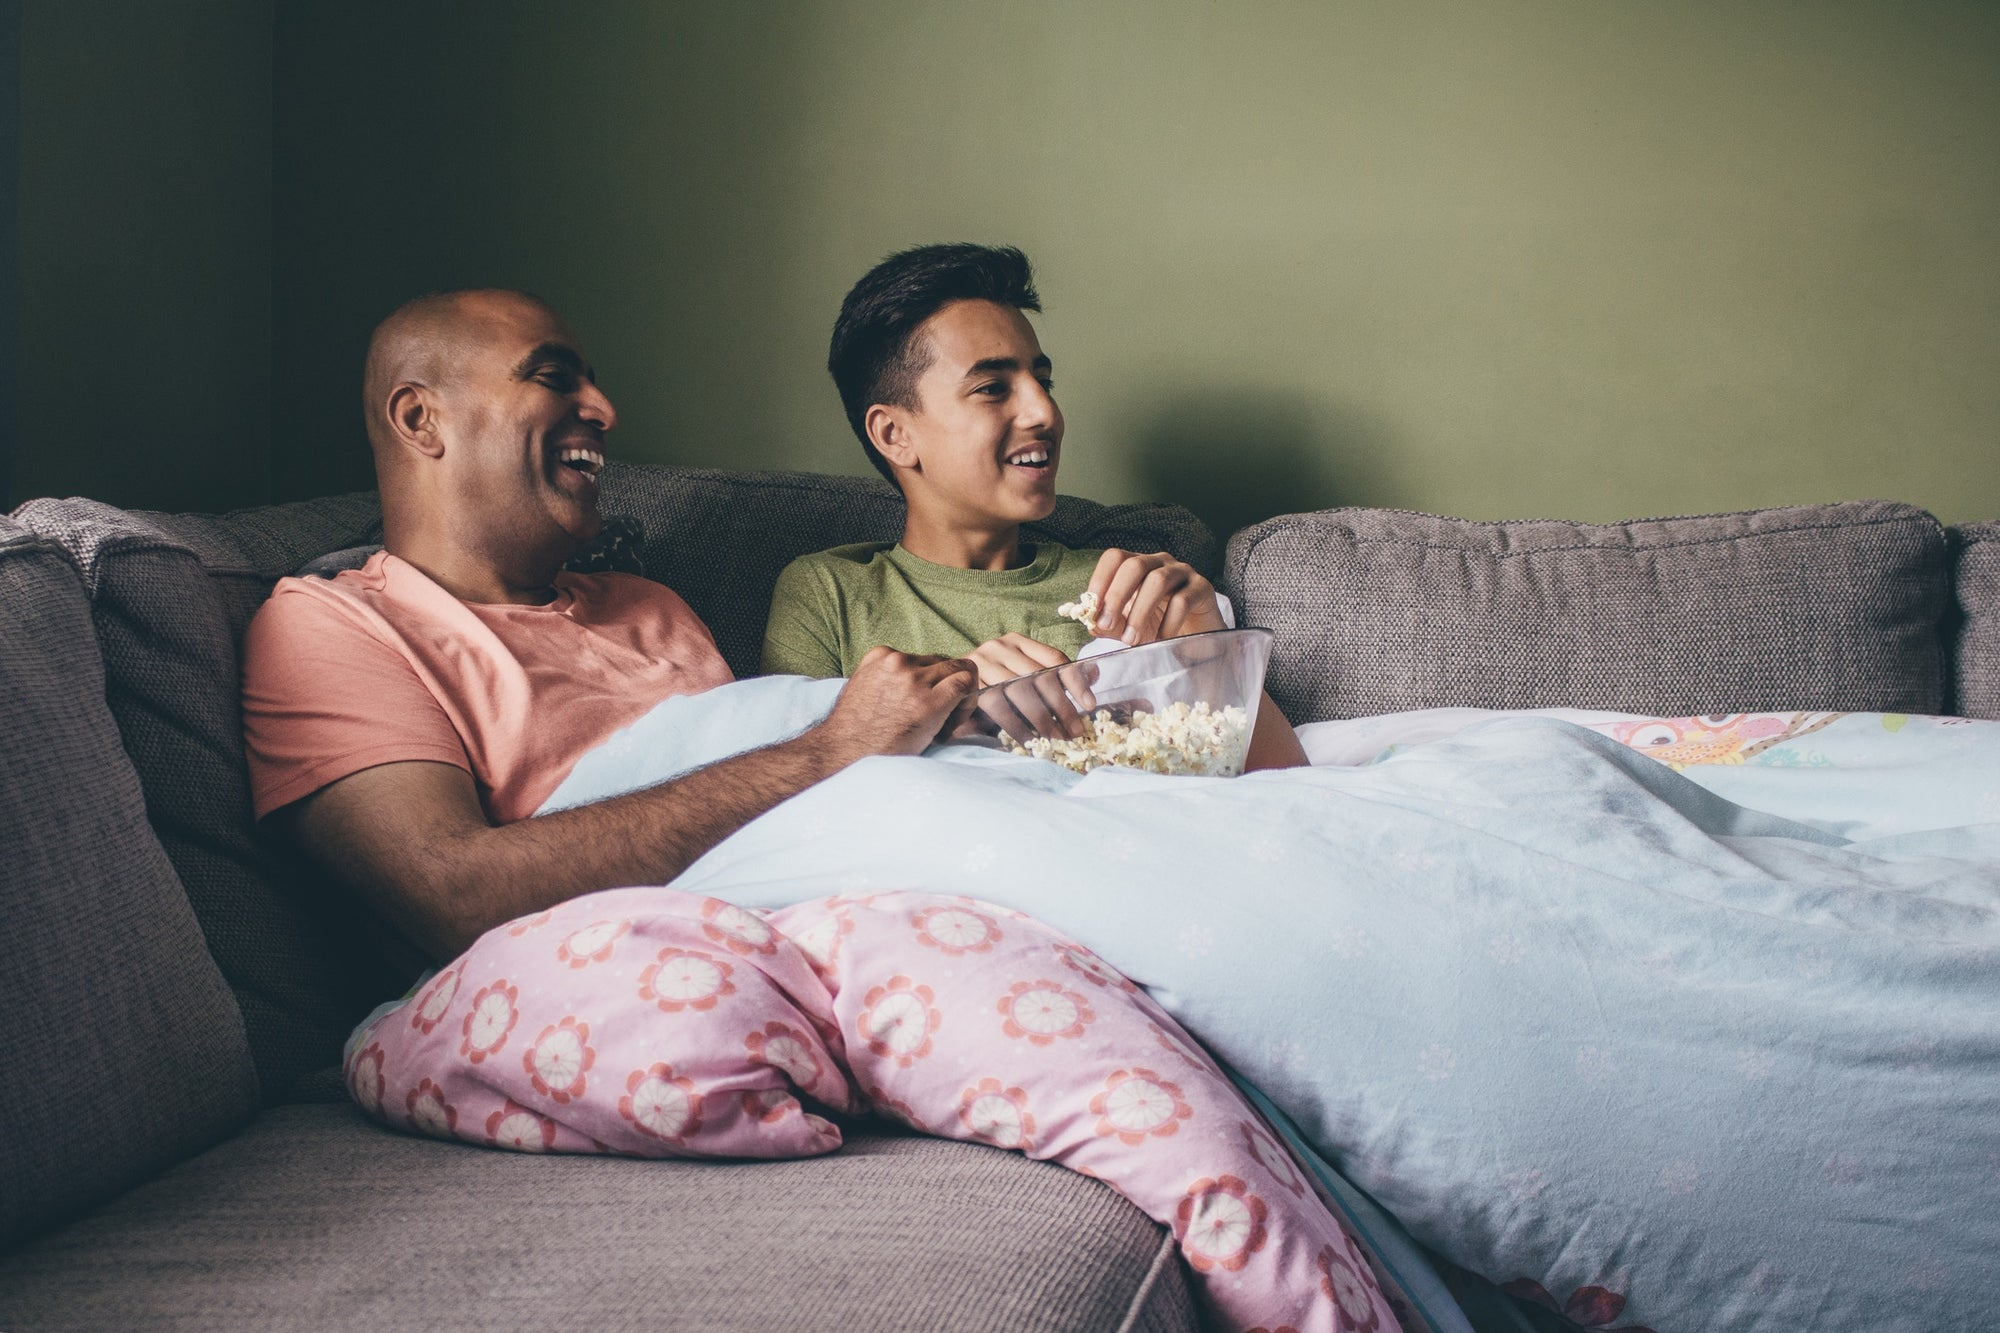 father and son watching tv and eating popcorn on sofa at home